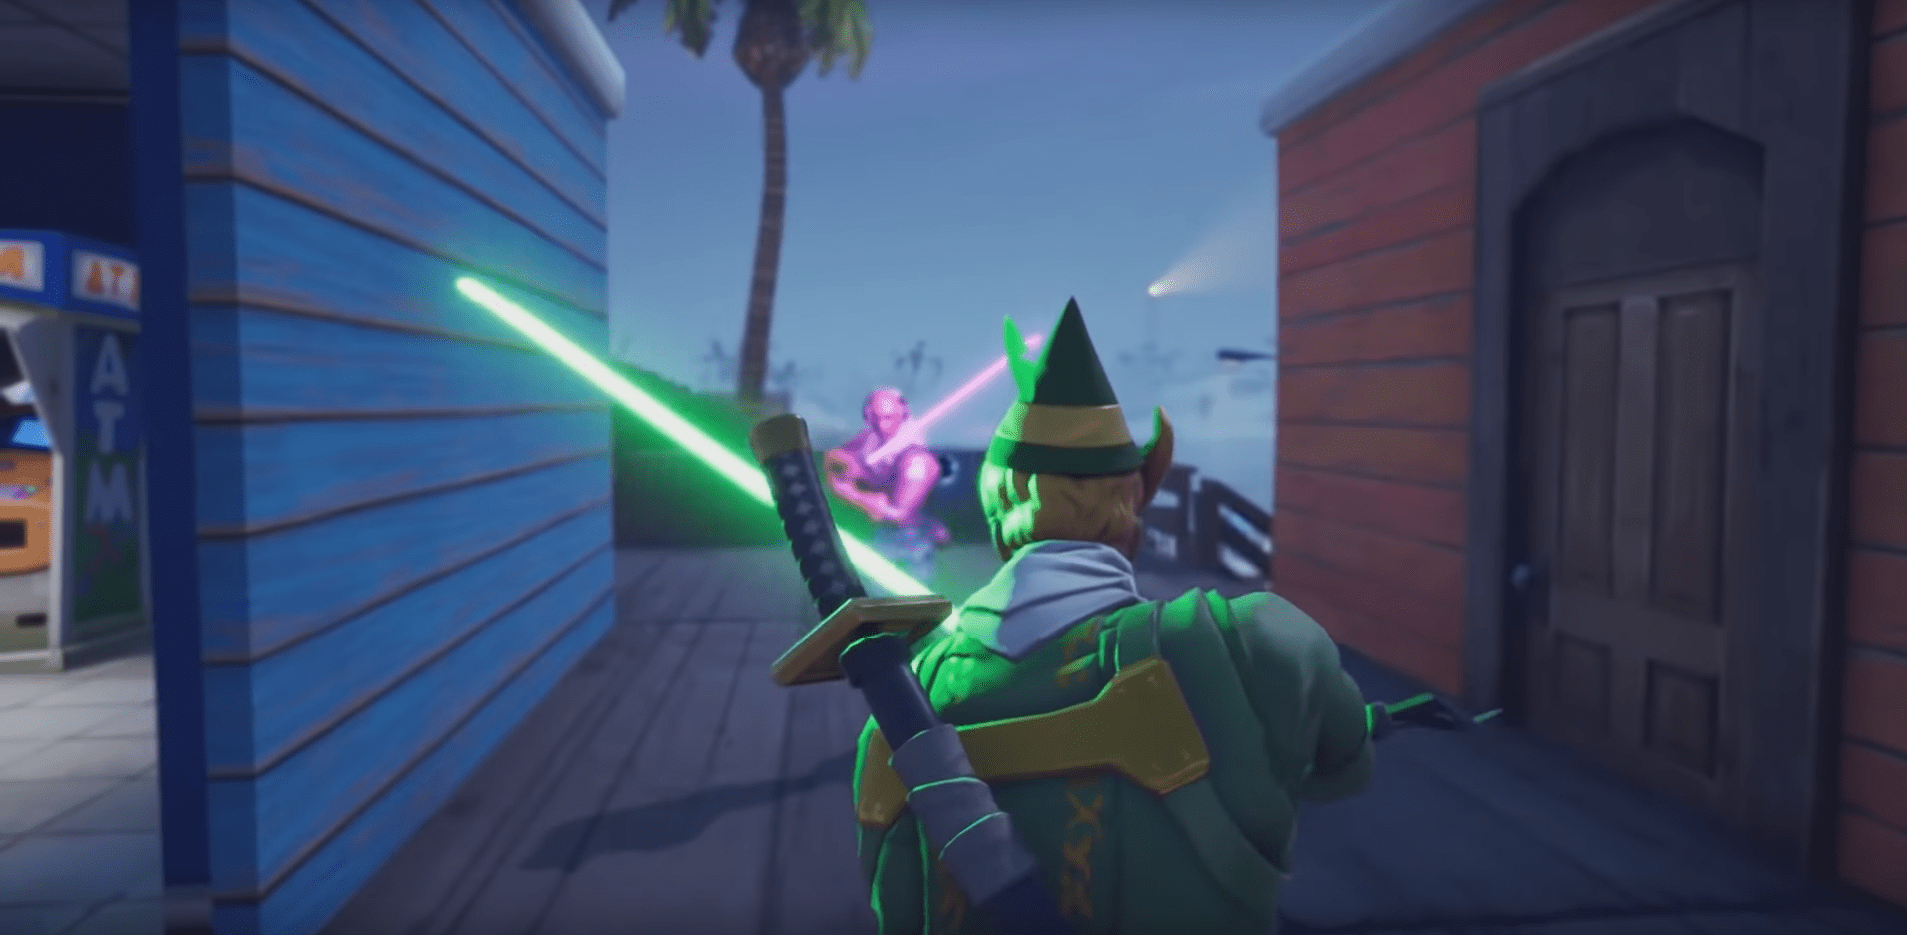 Fortnite's Seasonal Mode The Spy Within Is Getting Riffed For Copying Among Us